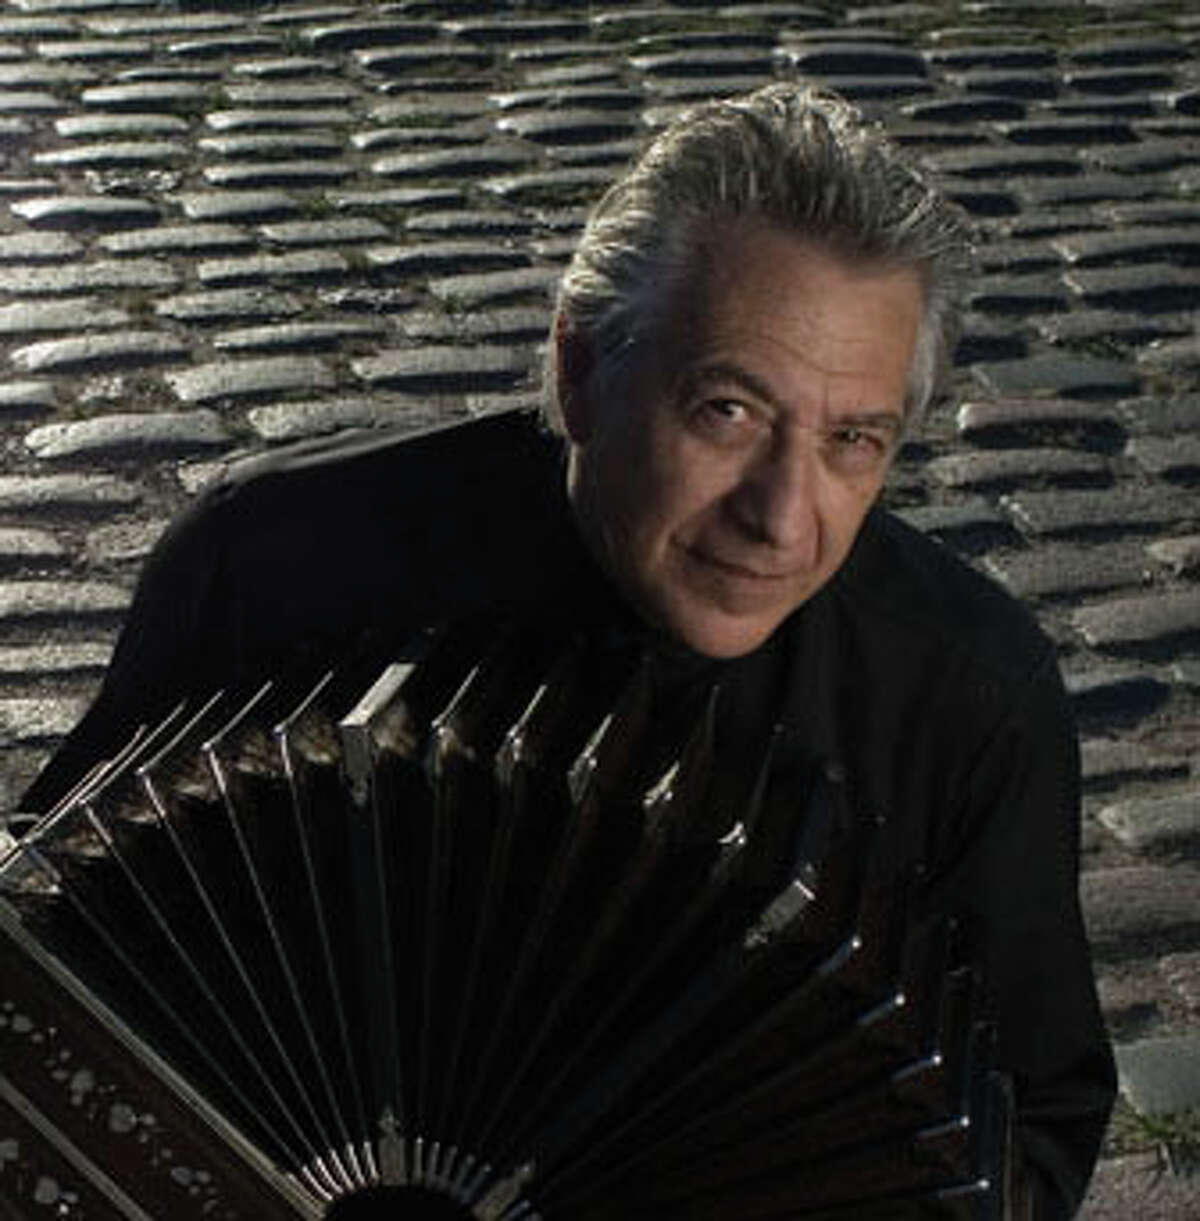 Bandoneonist Raul Jaurena, a Latin Grammy-Award winner, will be featured Friday, July 29, at the Milford Tango Passion show.